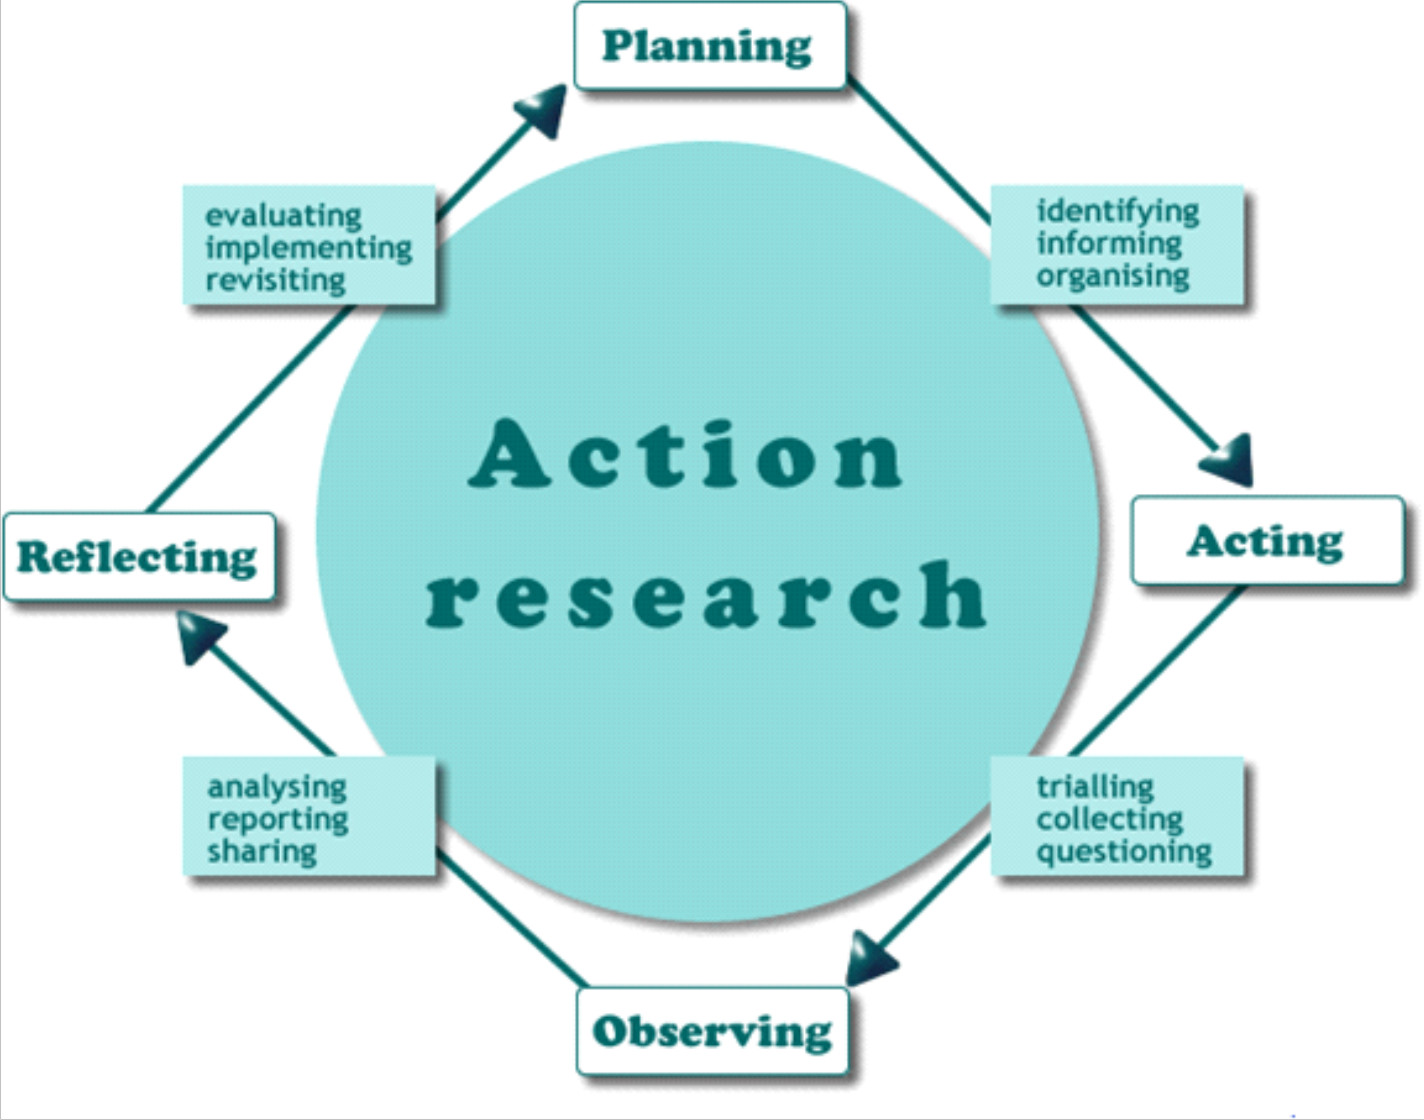 participatory action research We believe social science can play an important role in the struggle for social justice participatory action research (par) provides a critical framework for making.